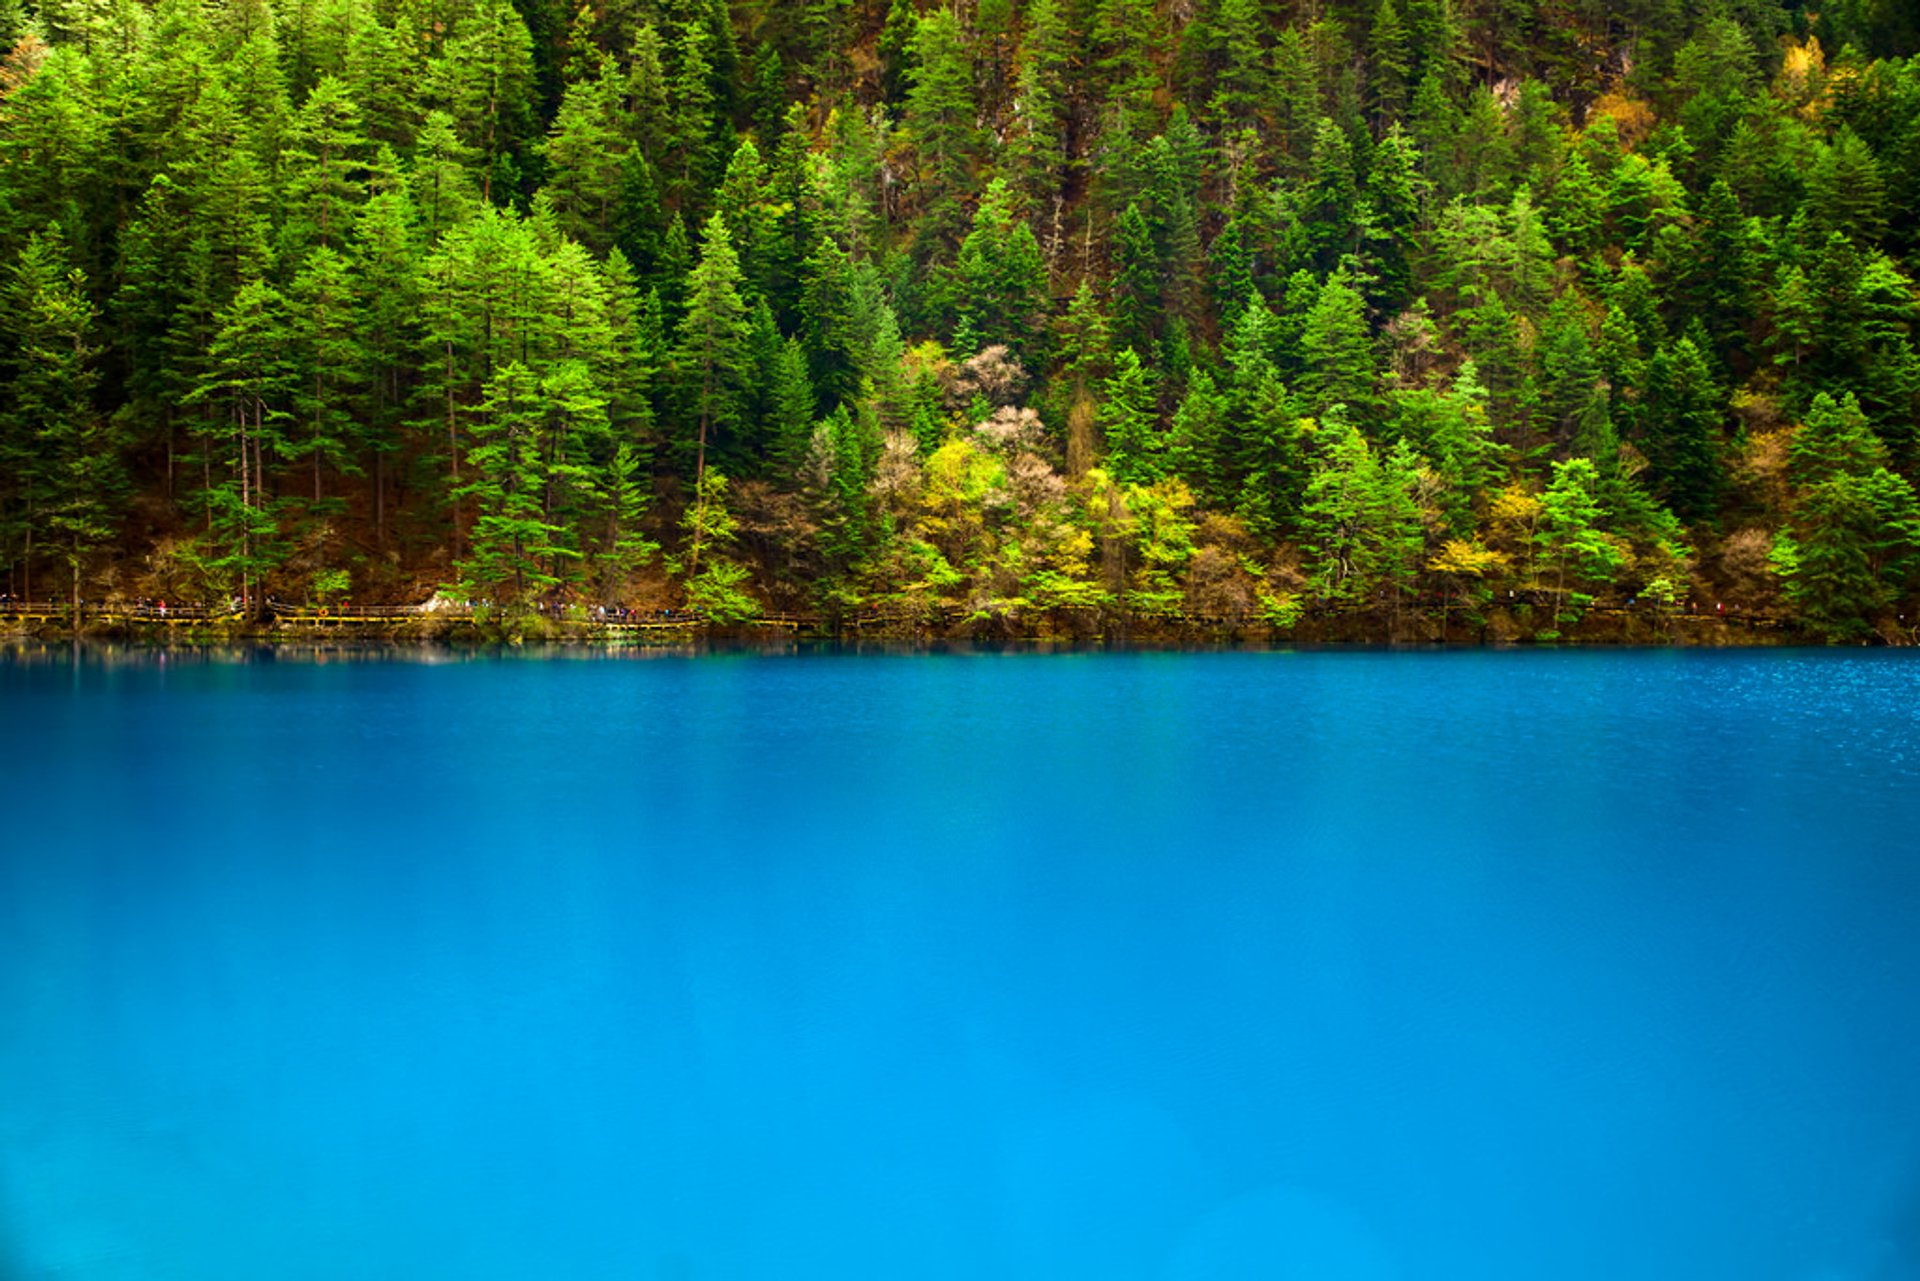 Jiuzhaigou Valley National Park in China 2019 - Best Time